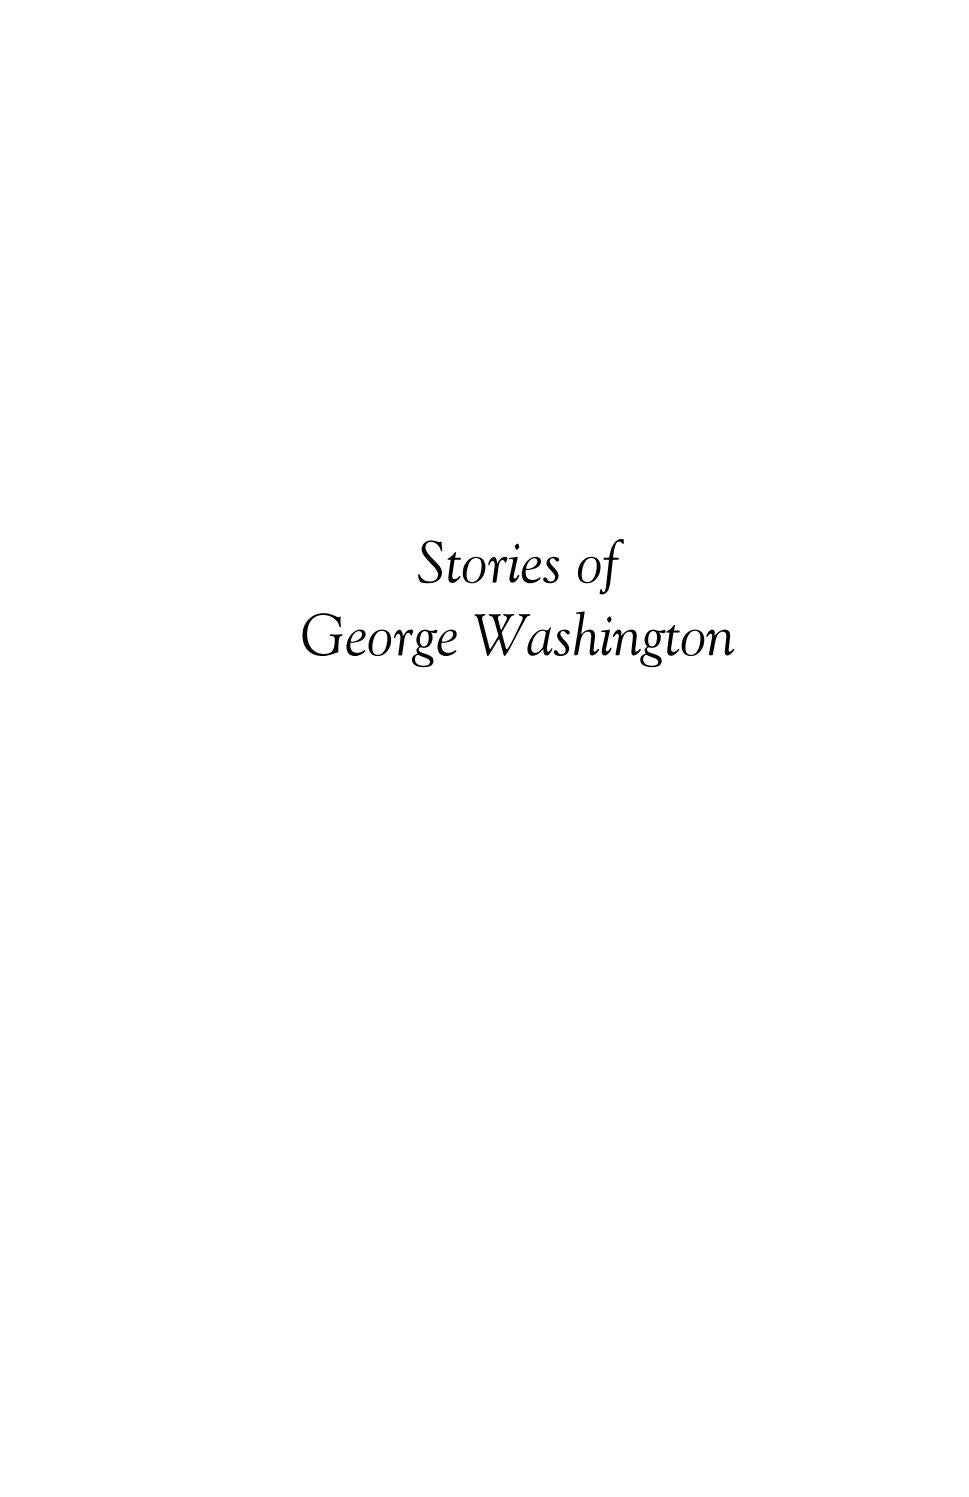 e303affe165ef Stories of George Washington by Libraries of Hope - issuu